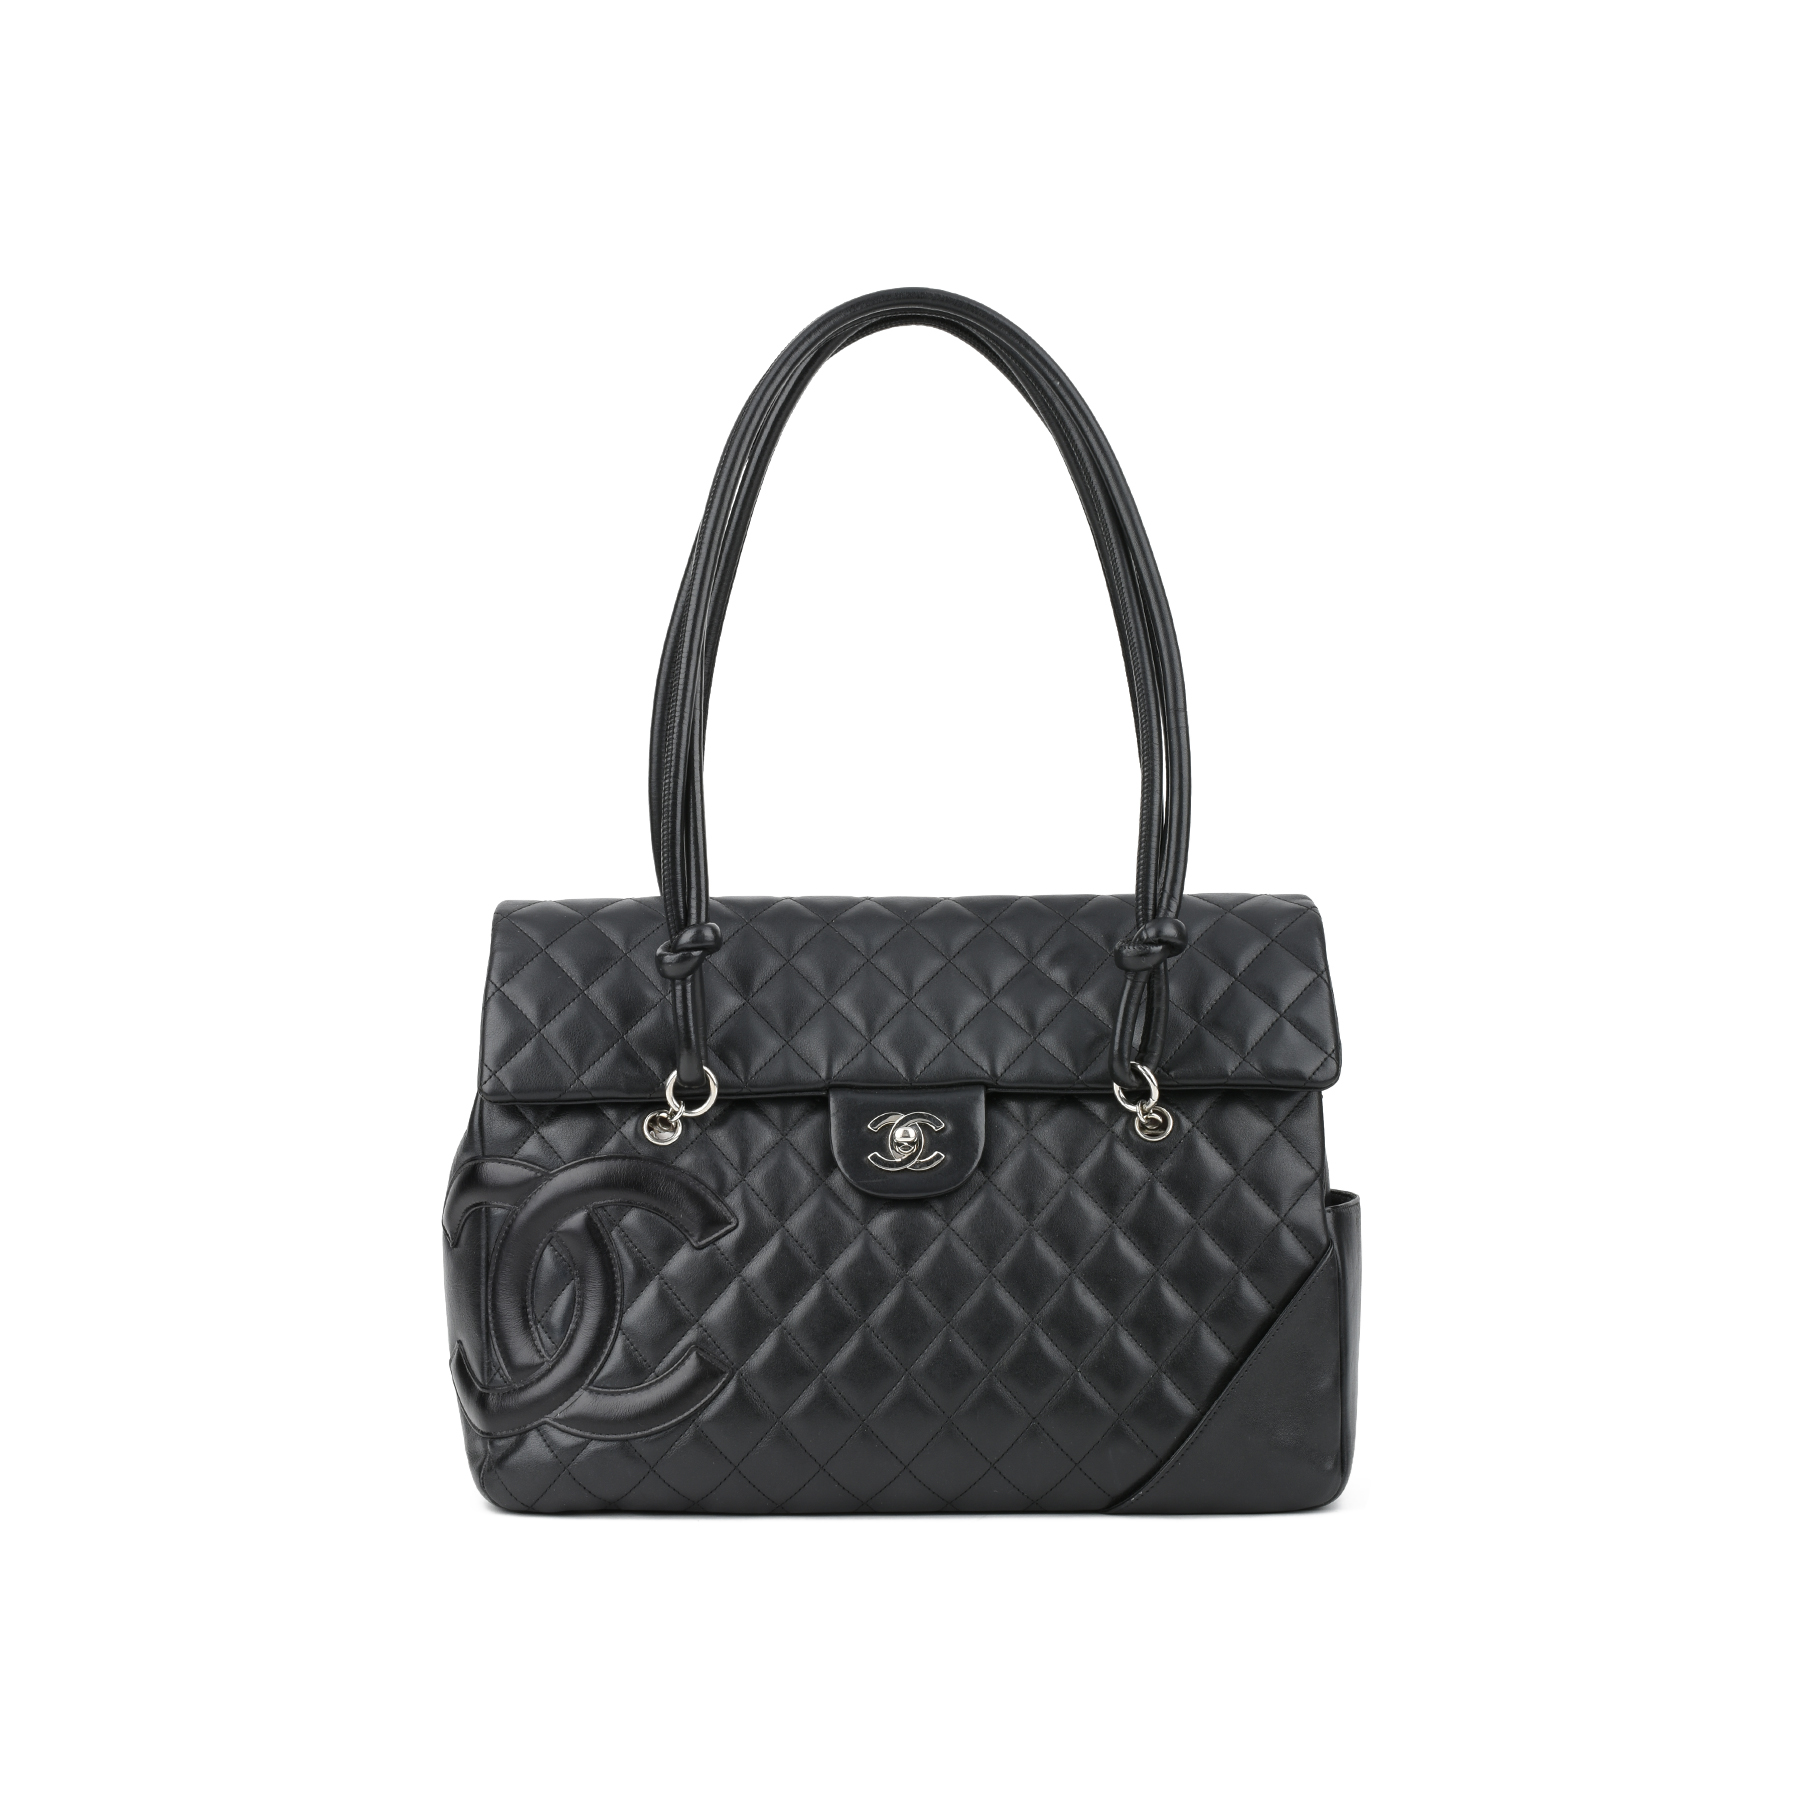 7de35e782543 Authentic Second Hand Chanel Large Quilted CC Cambon Flap Tote Bag  (PSS-436-00023) | THE FIFTH COLLECTION